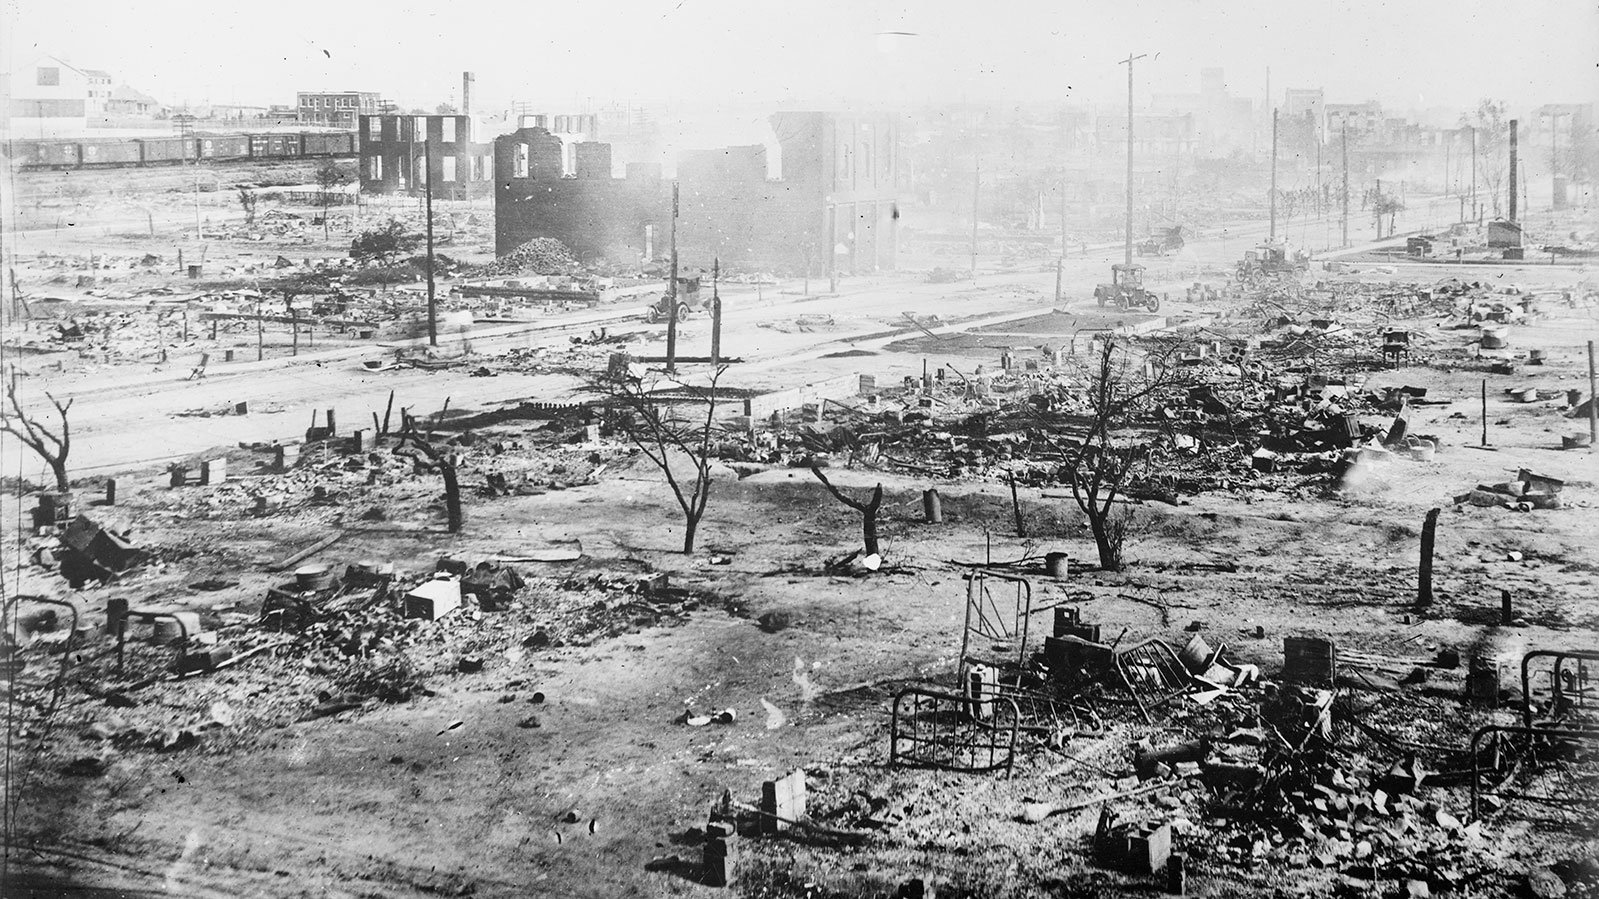 Ruins After the Race Riots, Tulsa, Okla